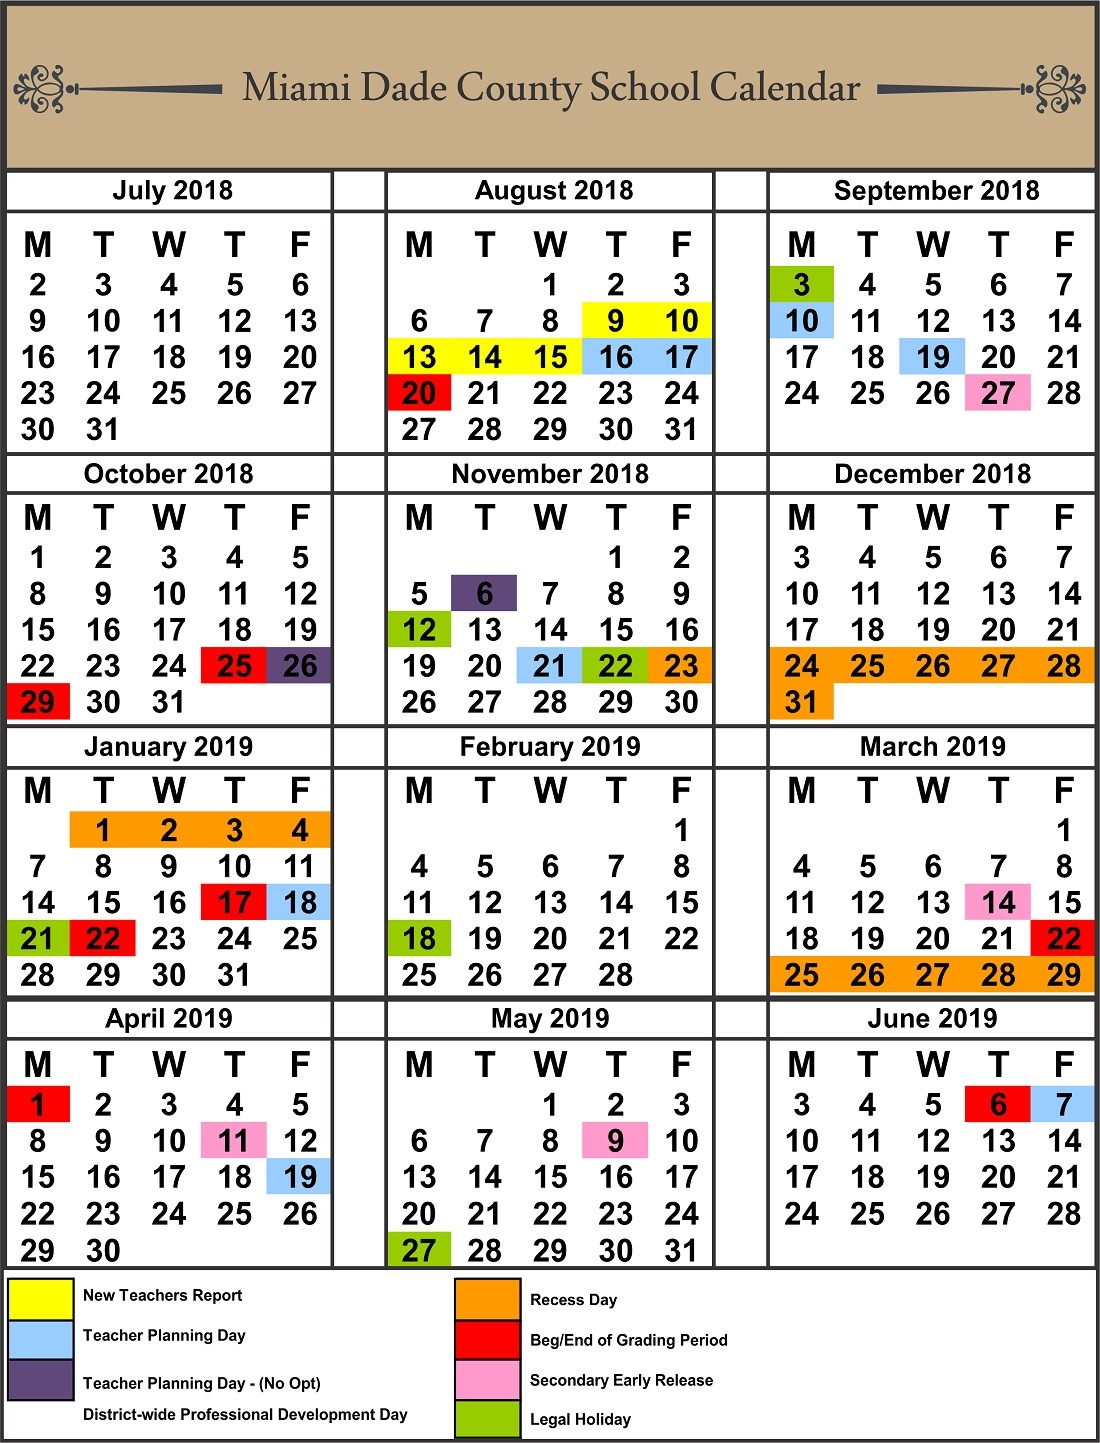 School Calendars 2017 2018 Portrait 20 11 14 Photo Calendar School Calendar Leon County